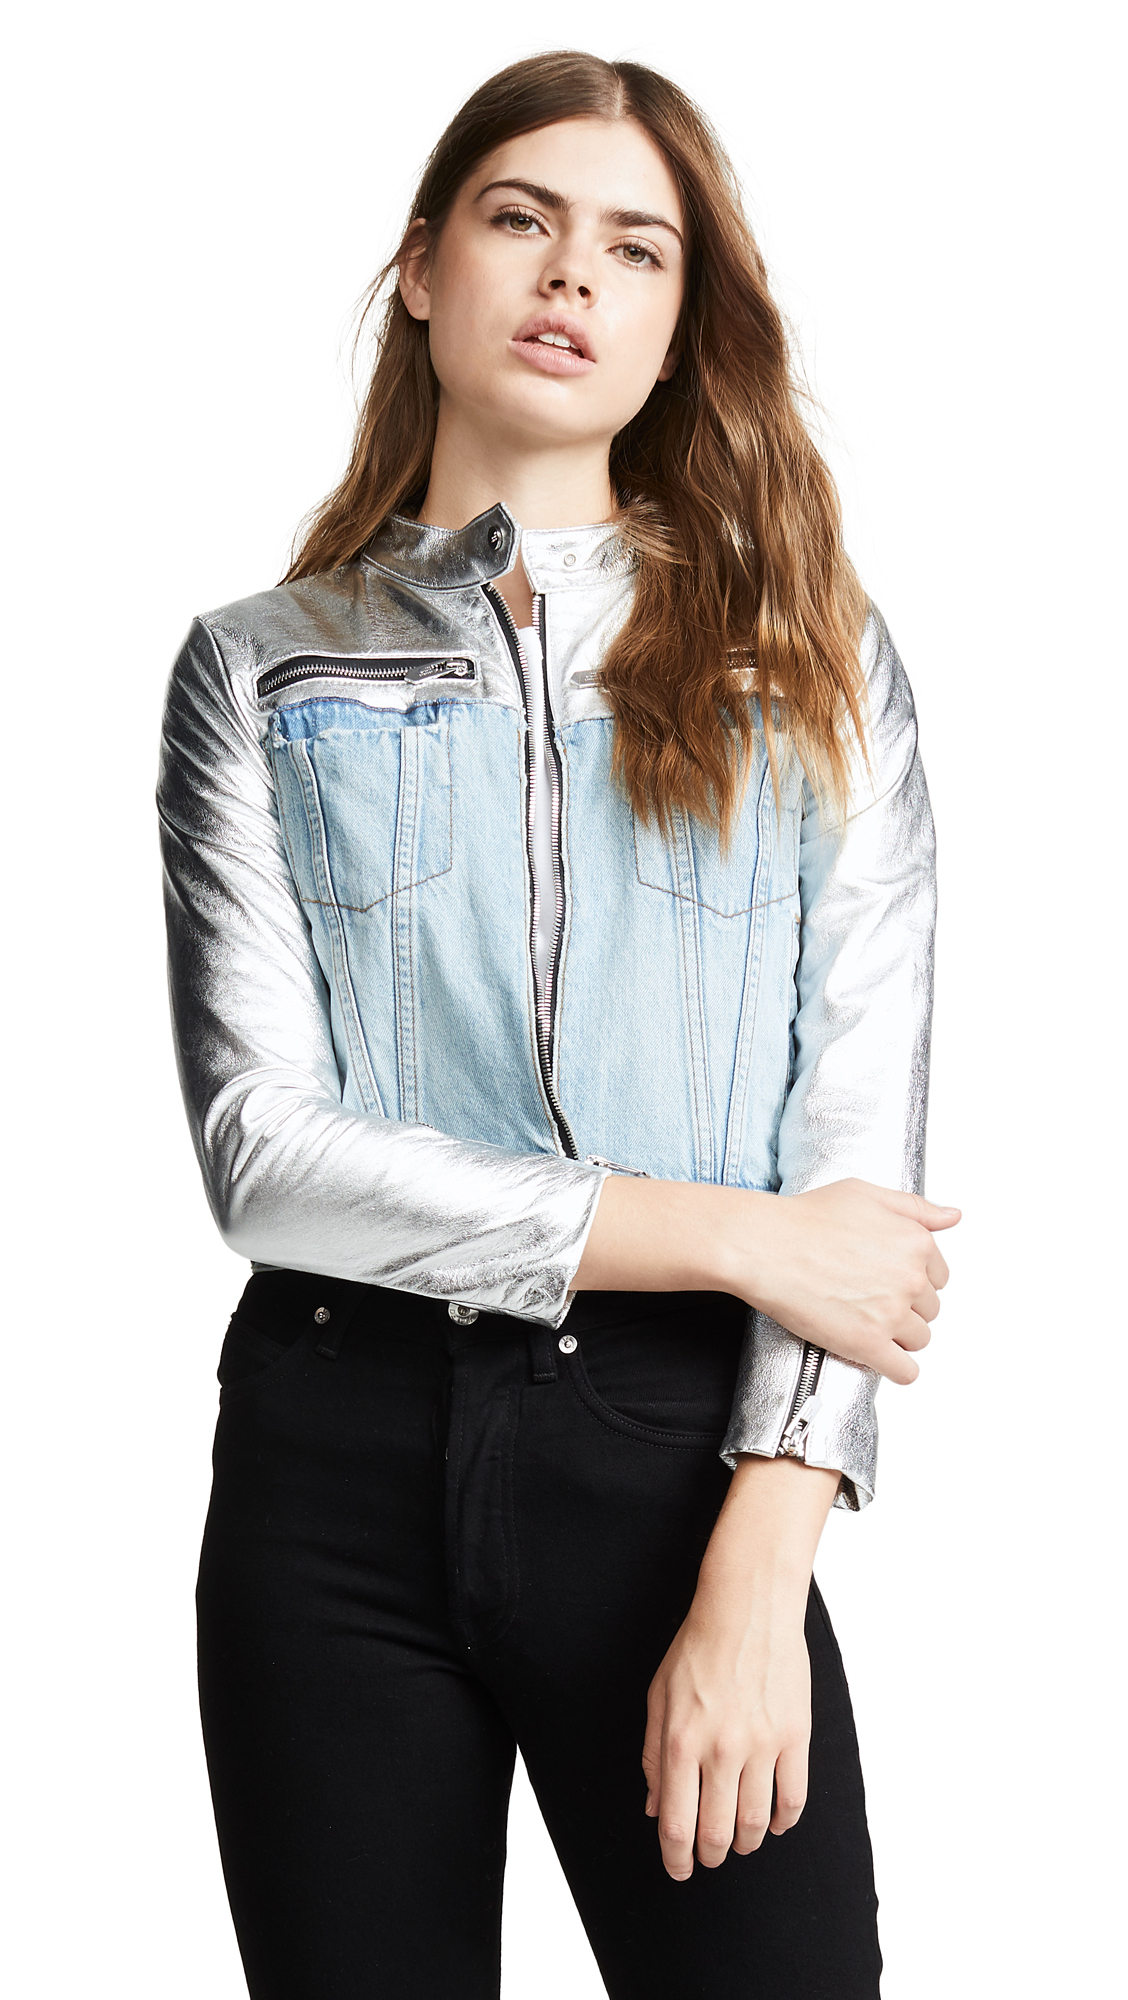 The Mighty Company Manchester Denim & Leather Jacket - Silver/Blue